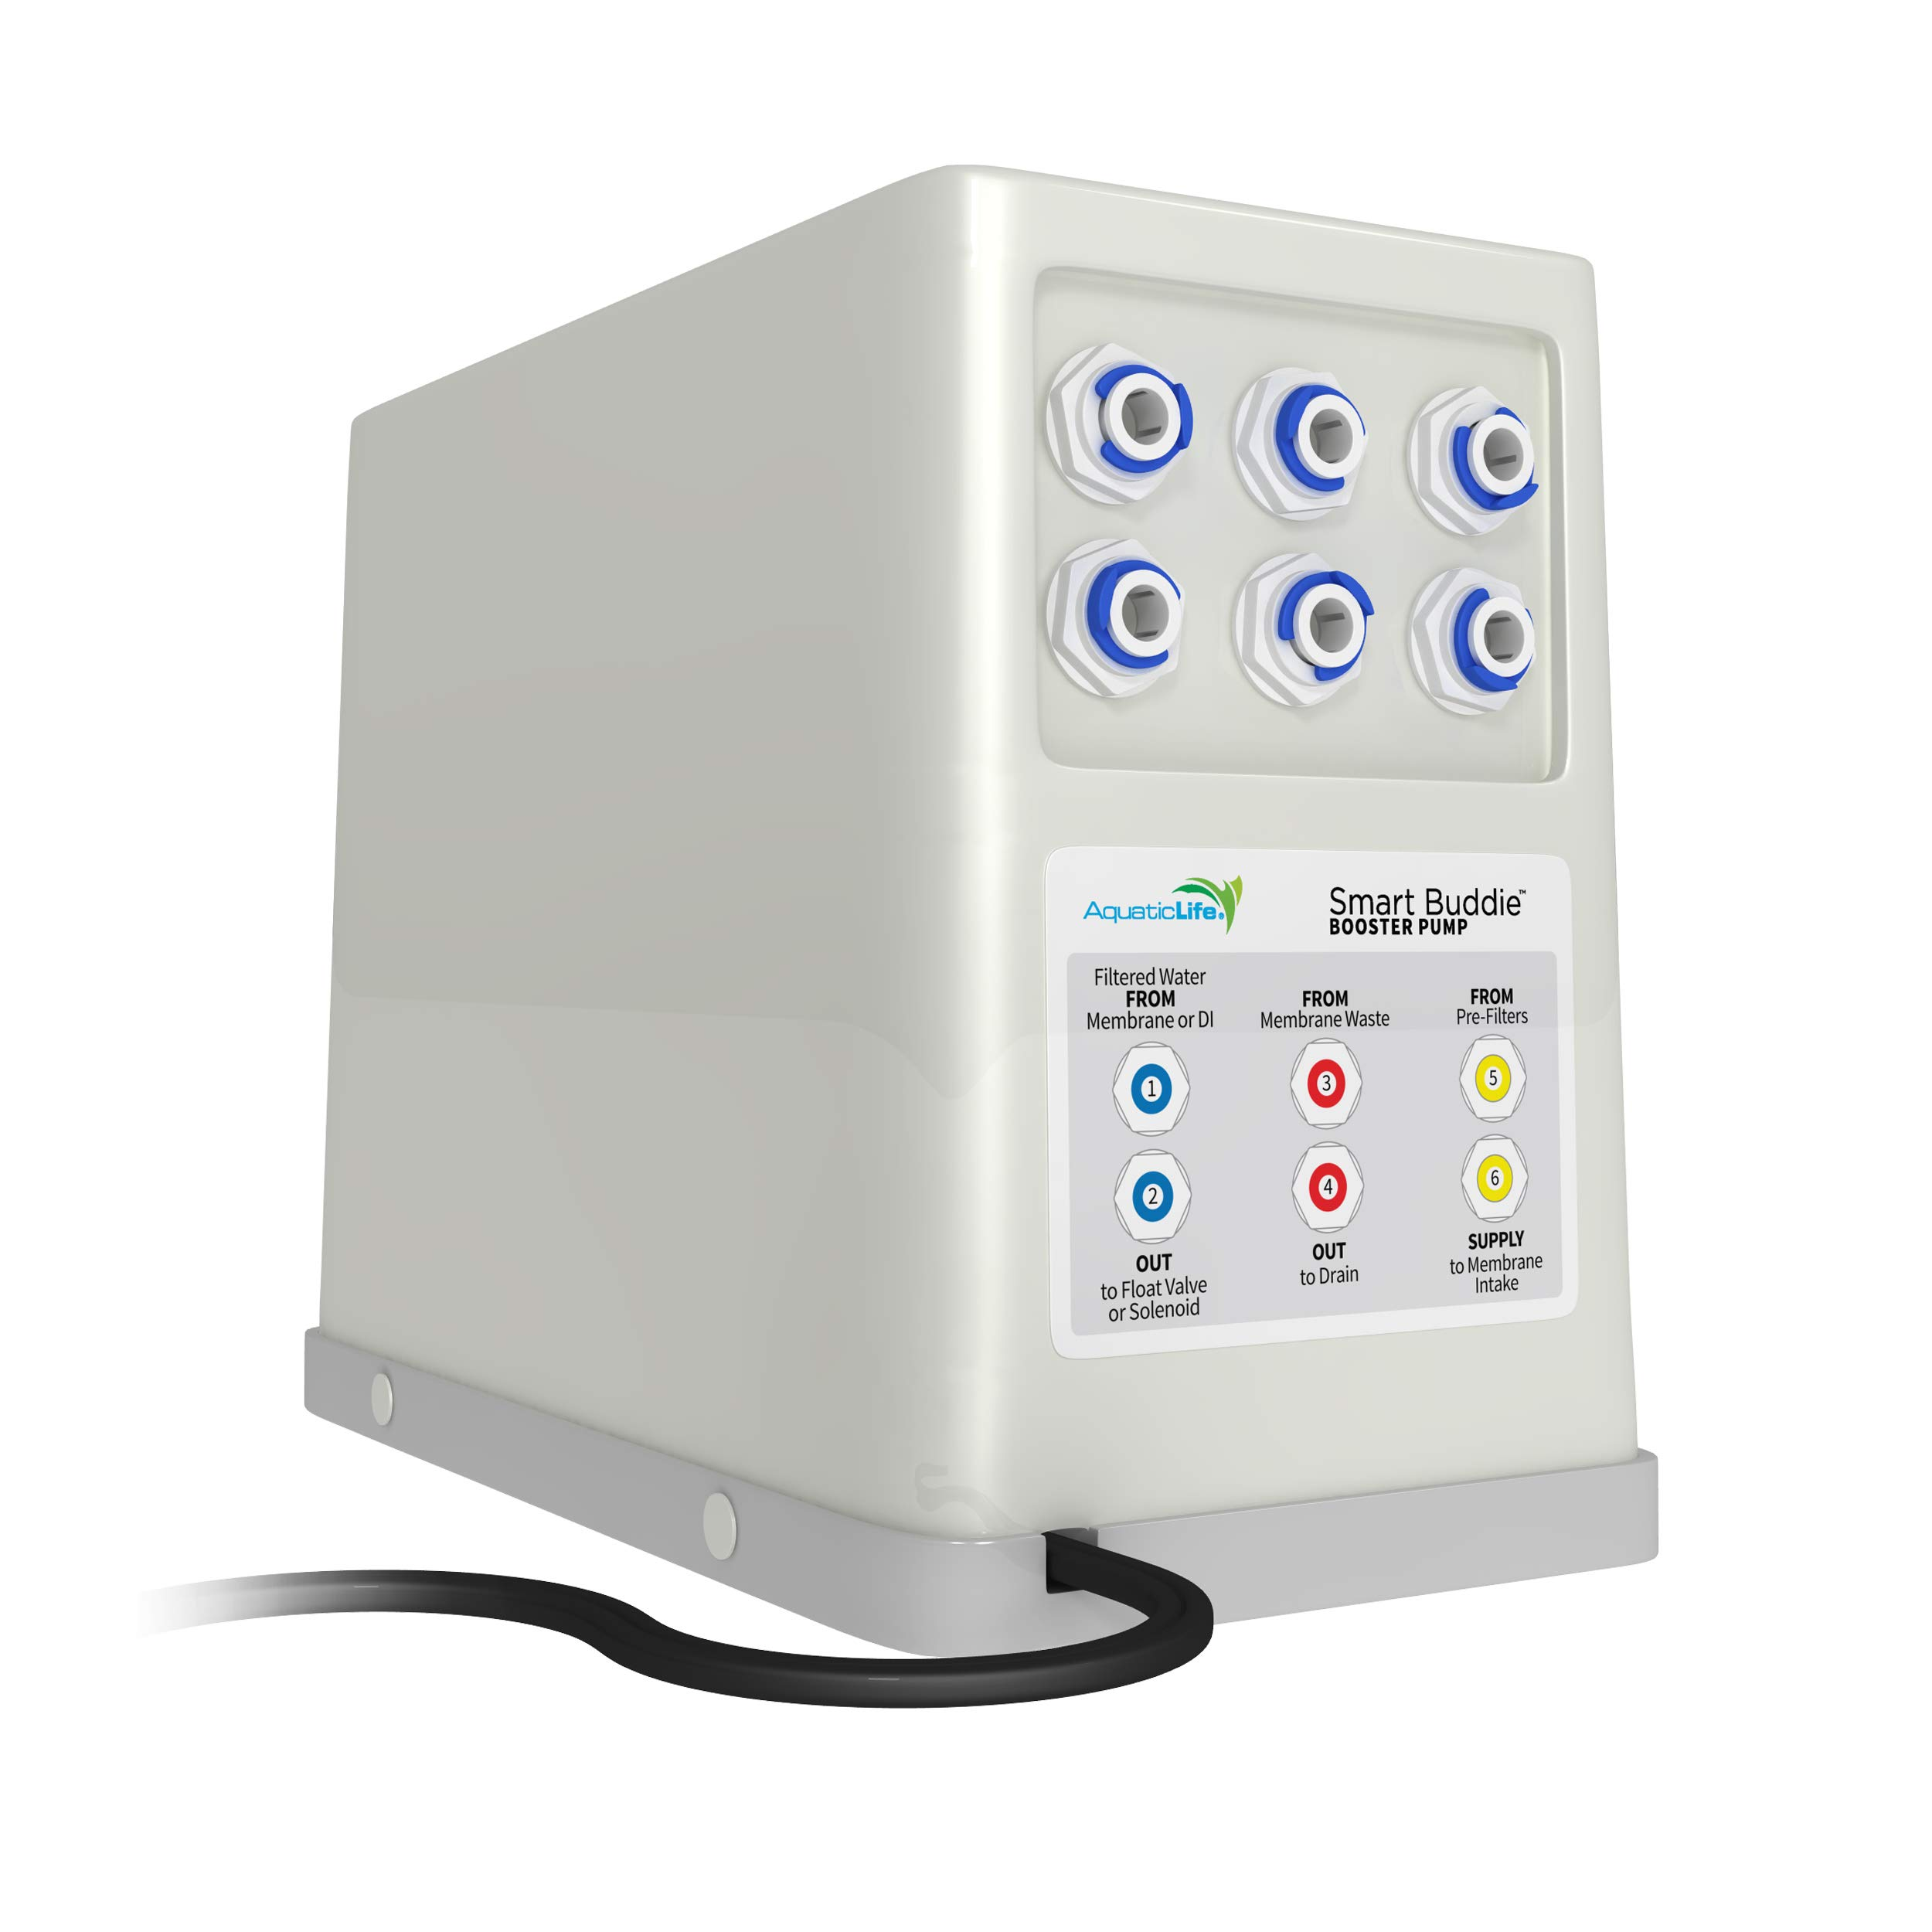 AQUATICLIFE Smart Buddie Booster Pump for 50-100 GPD Reverse Osmosis Systems